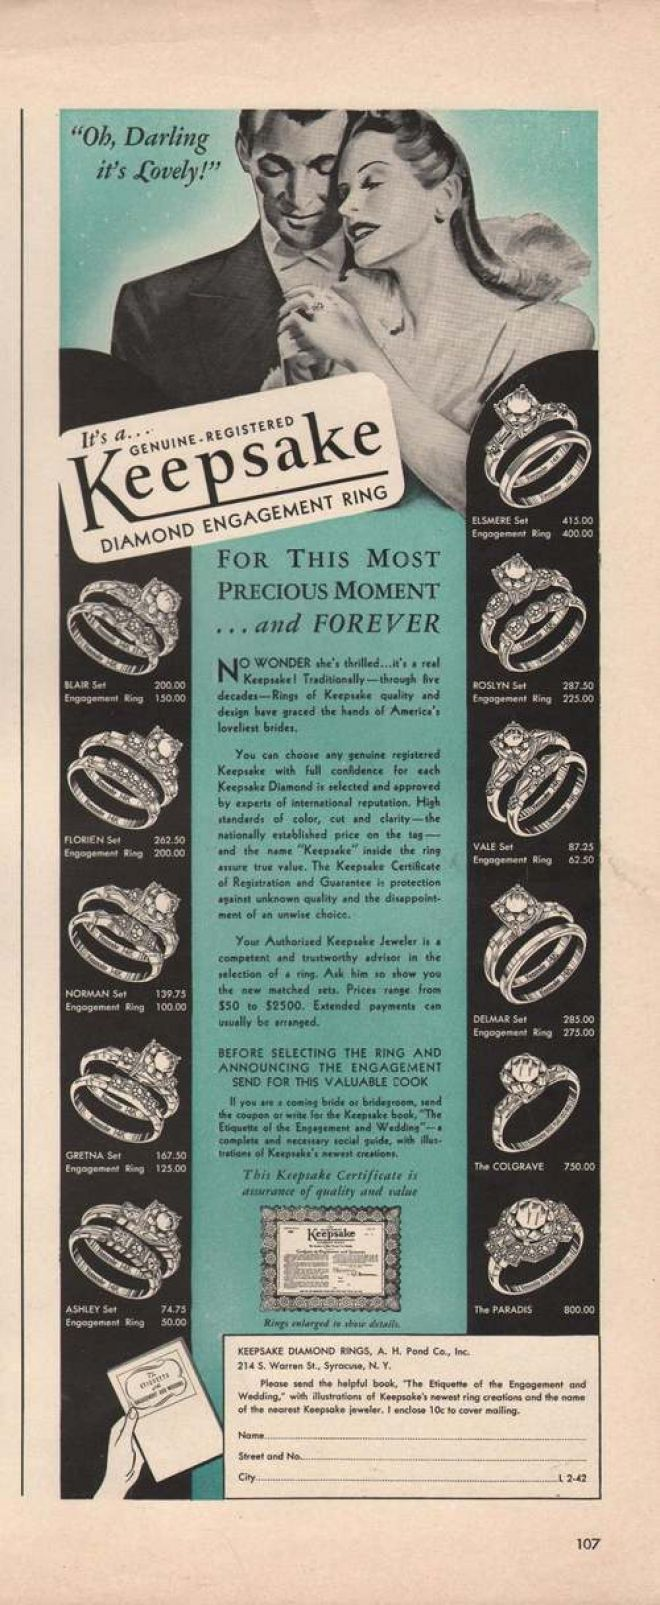 Keepsake Diamond Engagement Ring (1942) Check out the difference in price between the set and just the engagement ring and you can see how inexpensive just the wedding bands are.